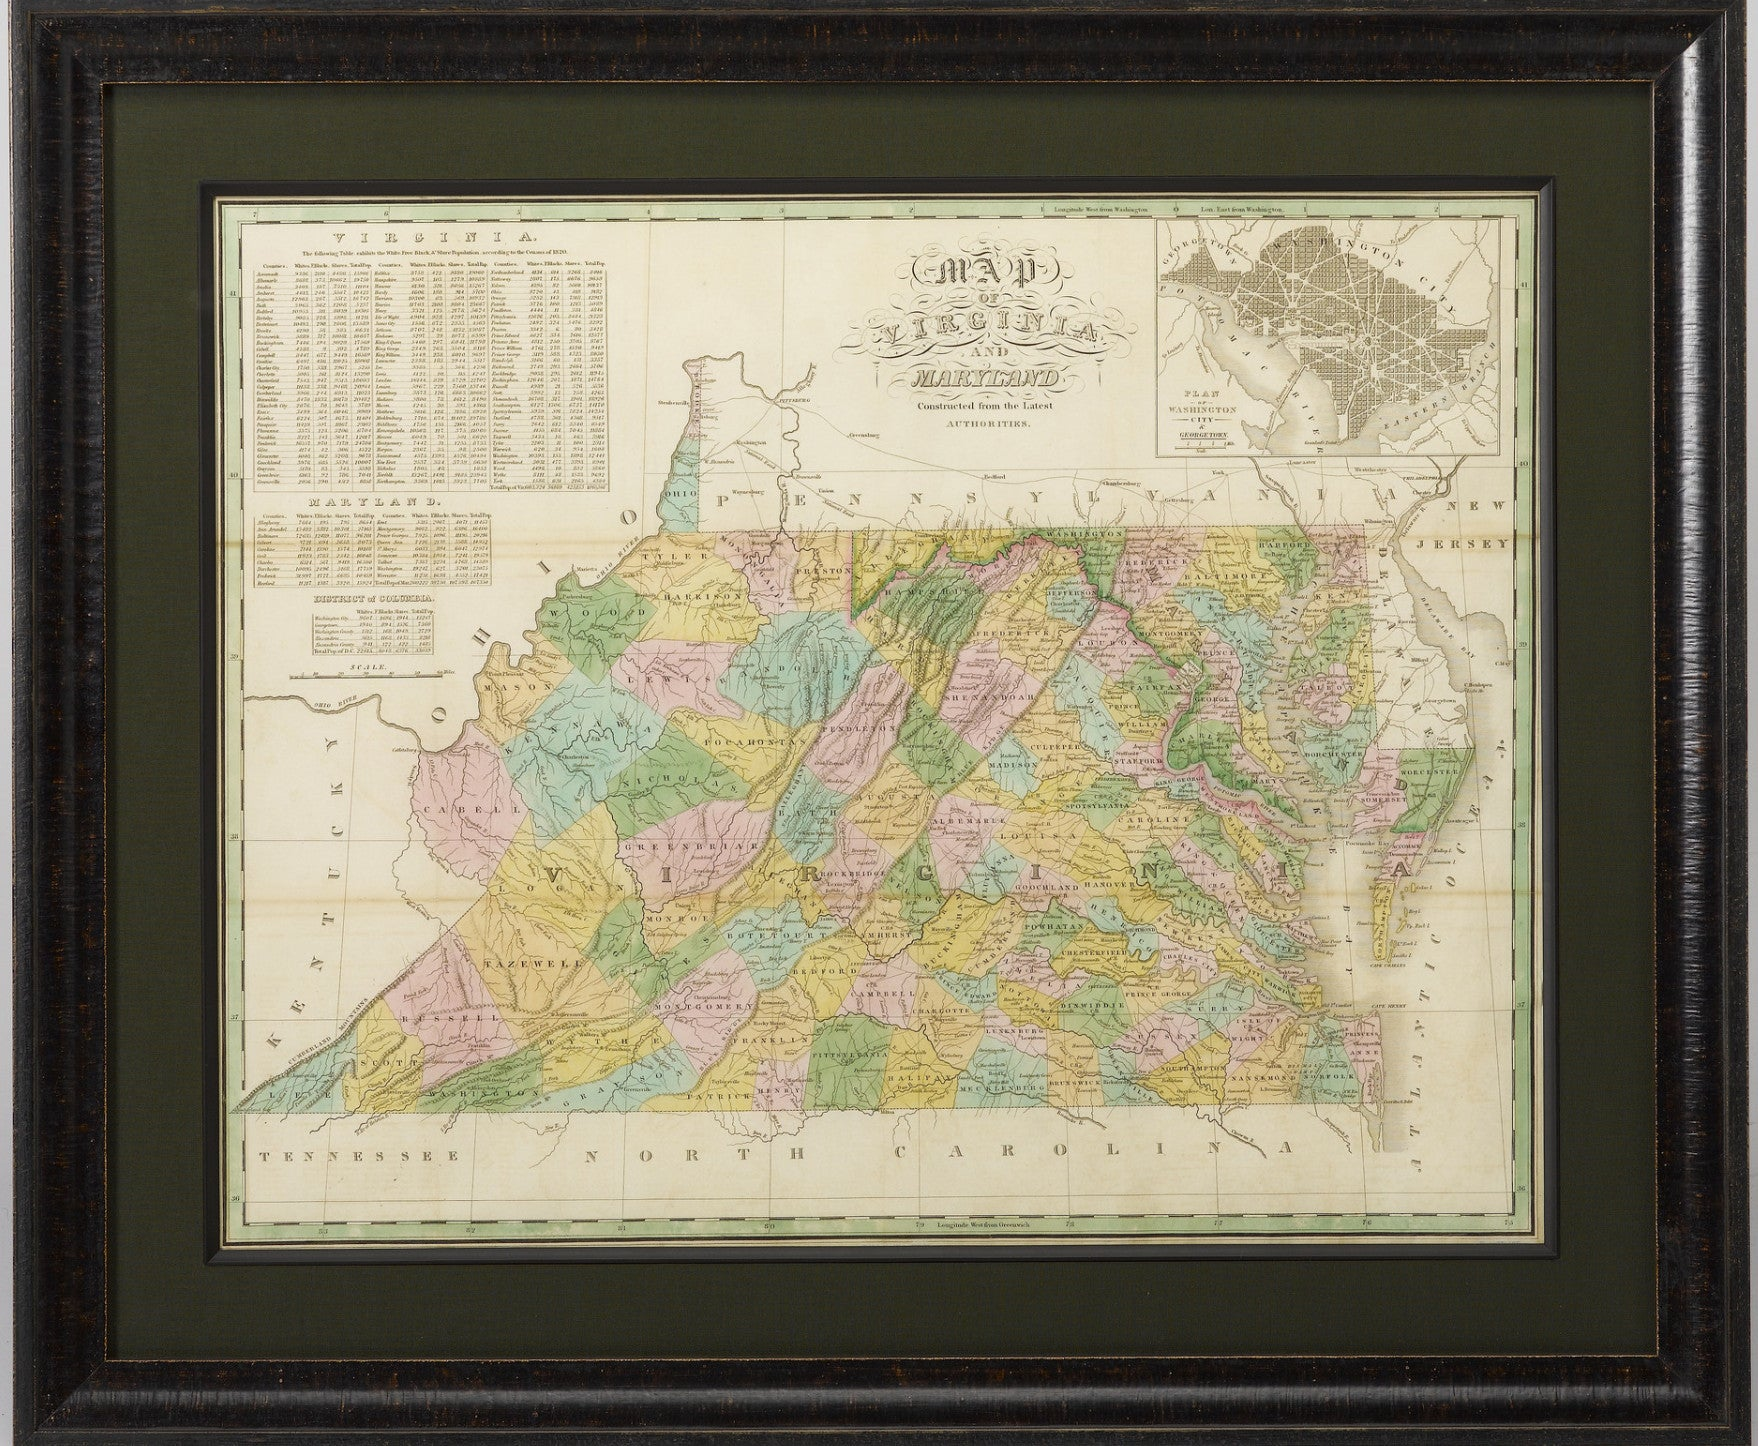 1829 Map Of Virginia And Maryland By Anthony Finley The Great Republic